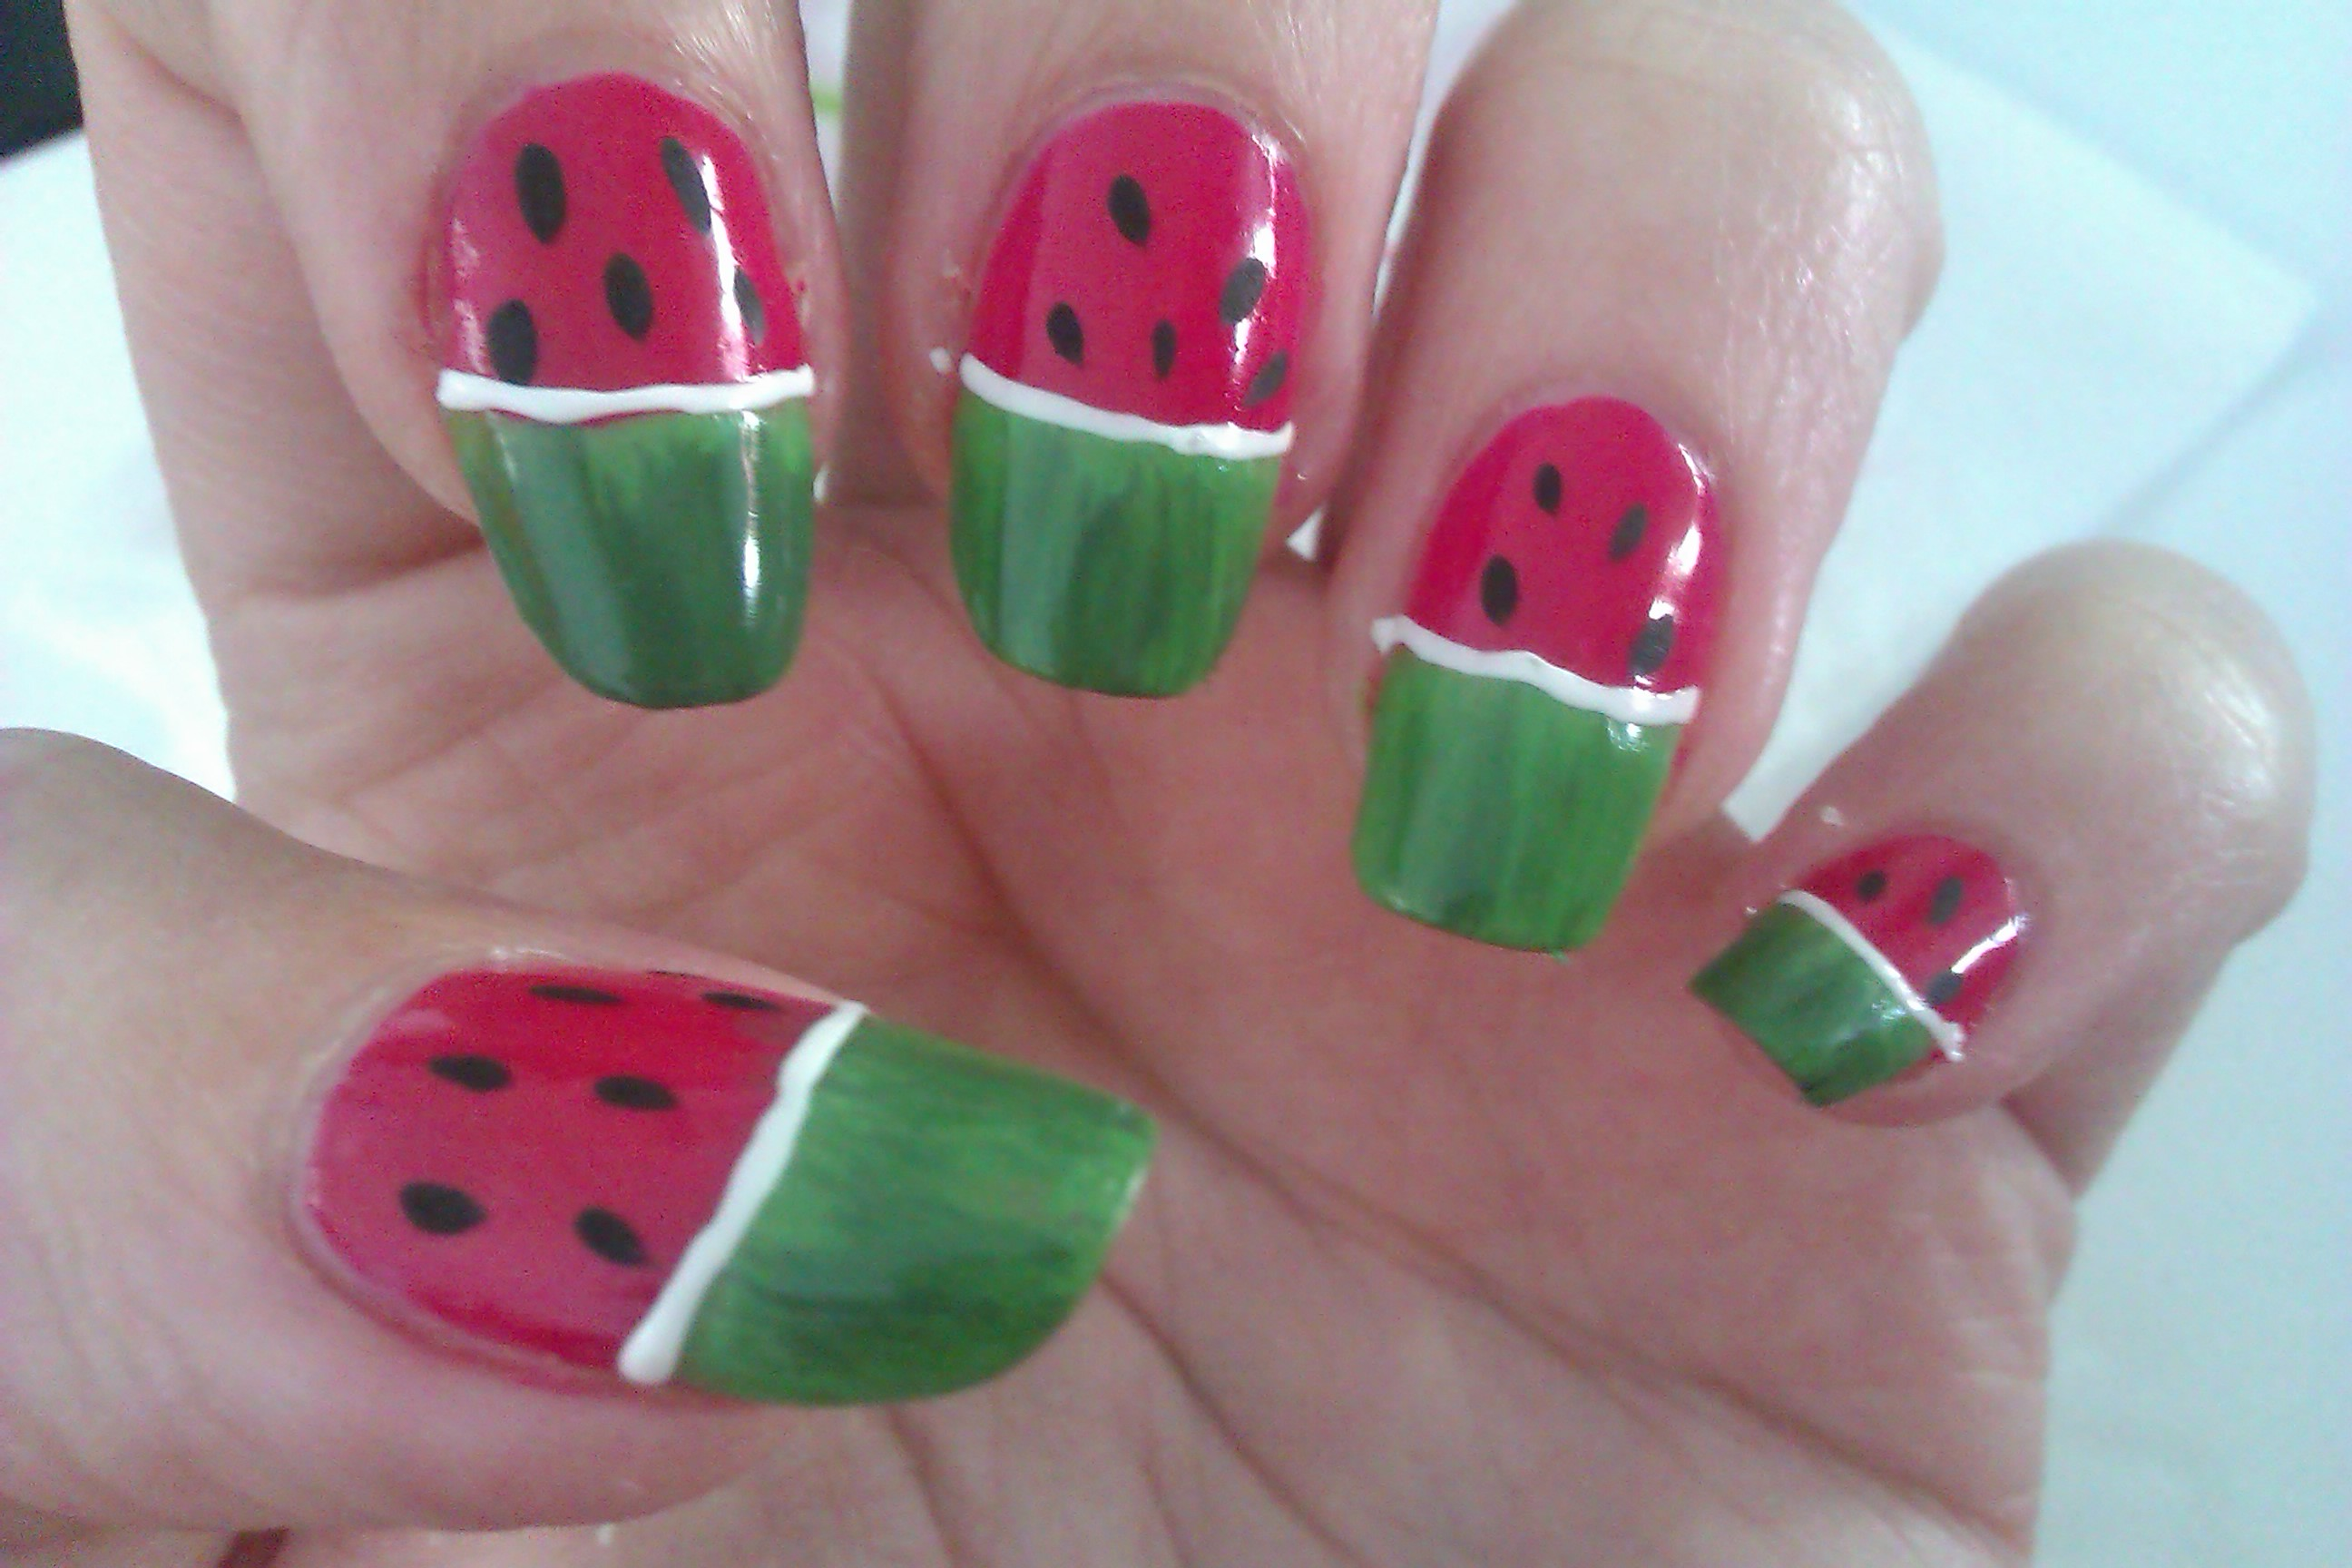 HOW TO CREATE NAIL ART DESIGNS Home Galeries